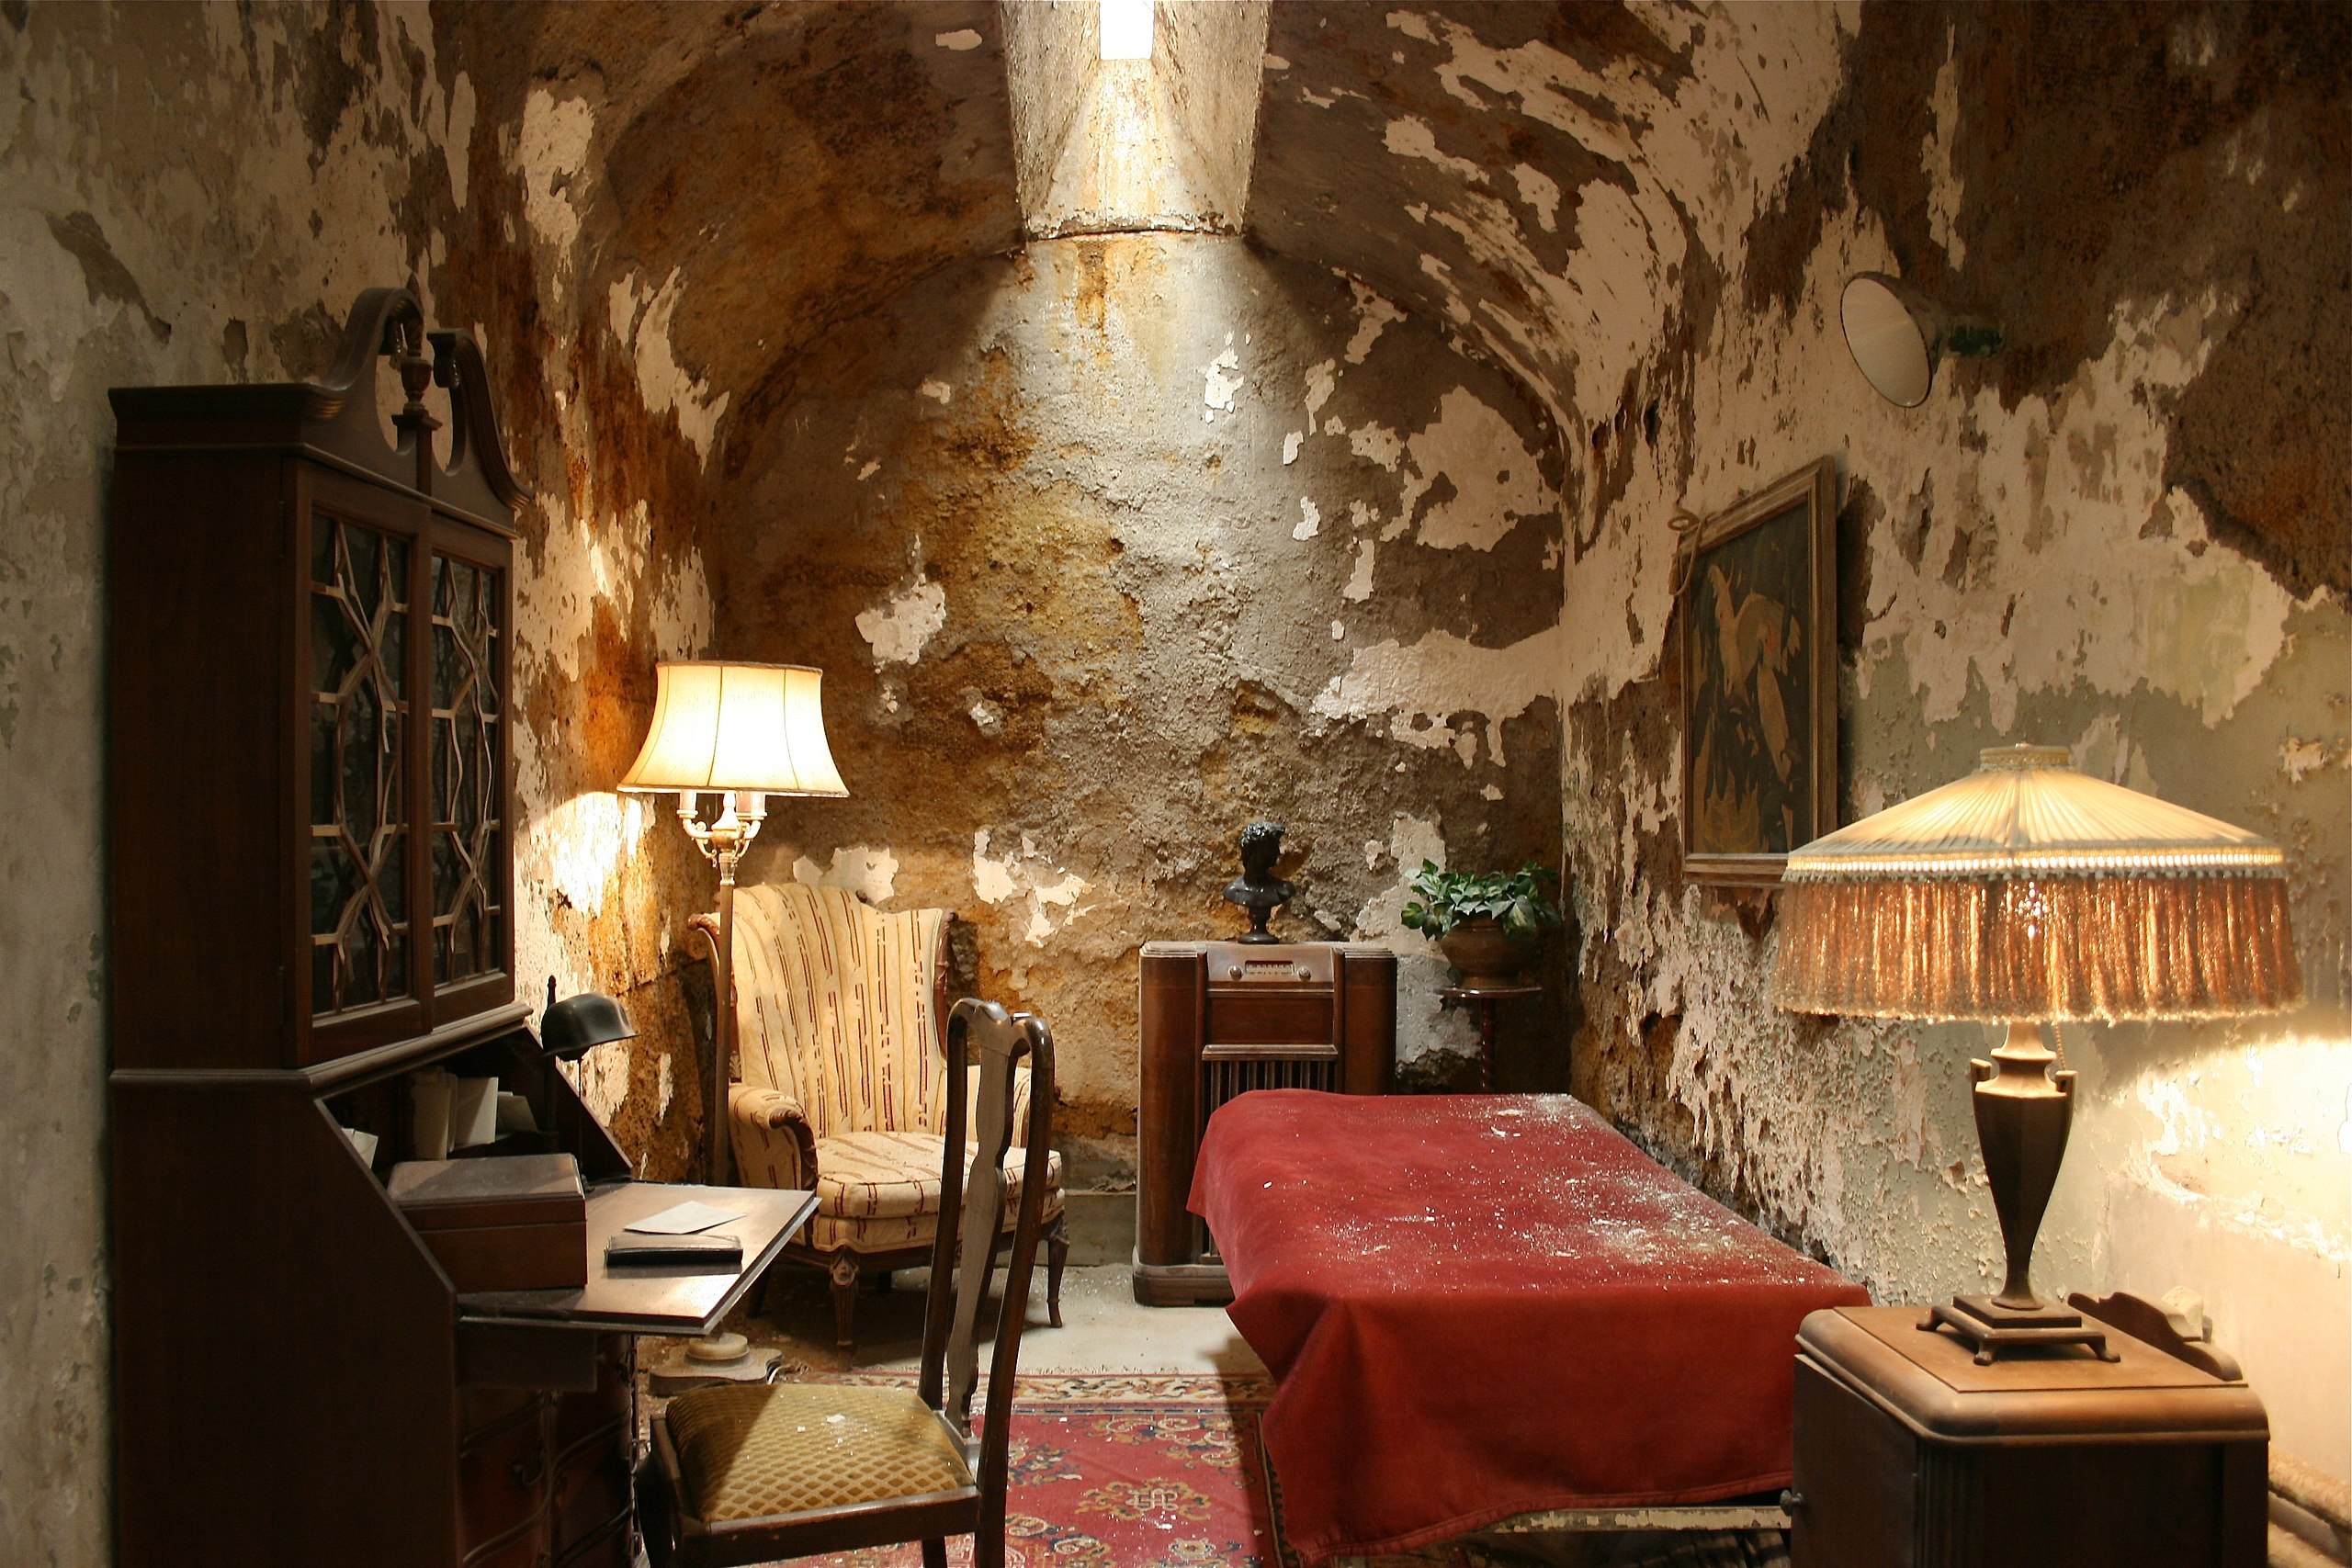 Al Capone's cell at Eastern State Penitentiary (Creative Commons image; 2007)